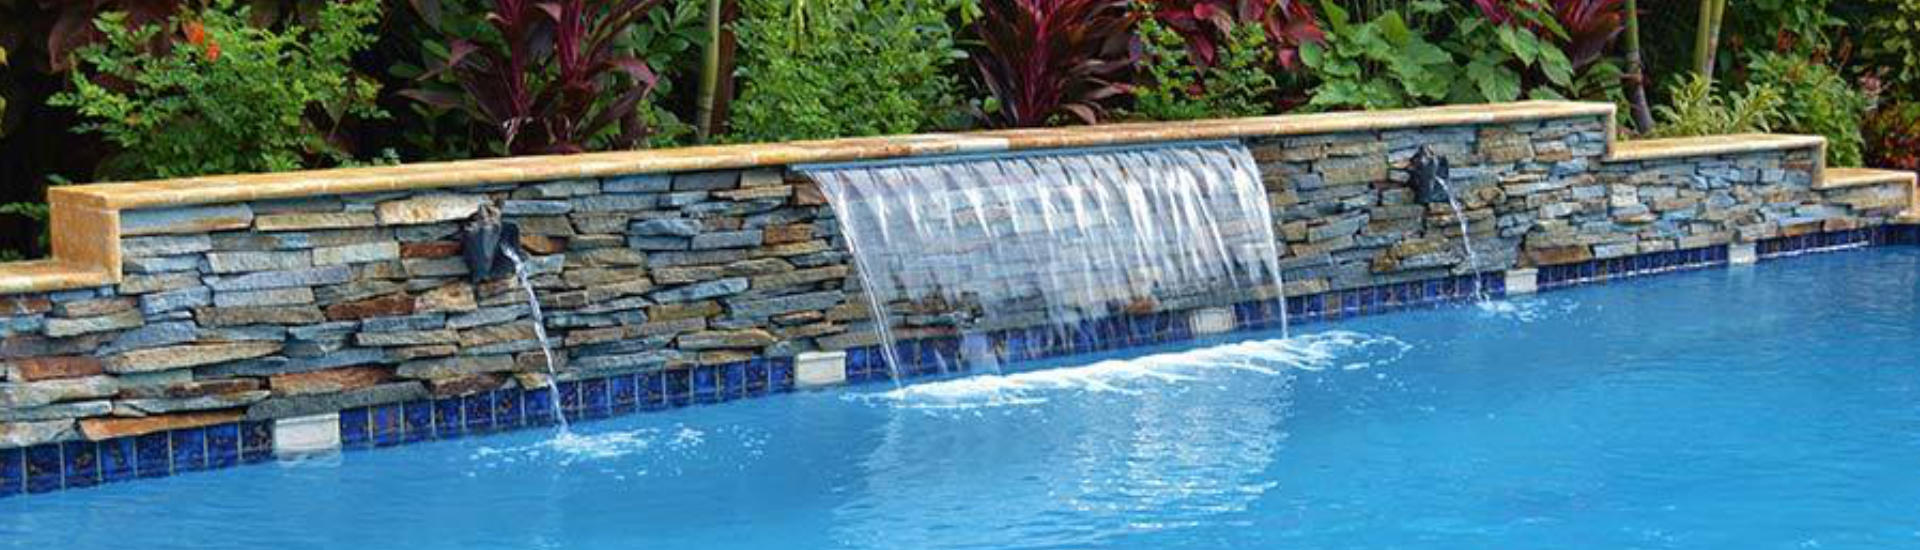 Waterfalls Photo Gallery Sunsational Pools Spas Inc